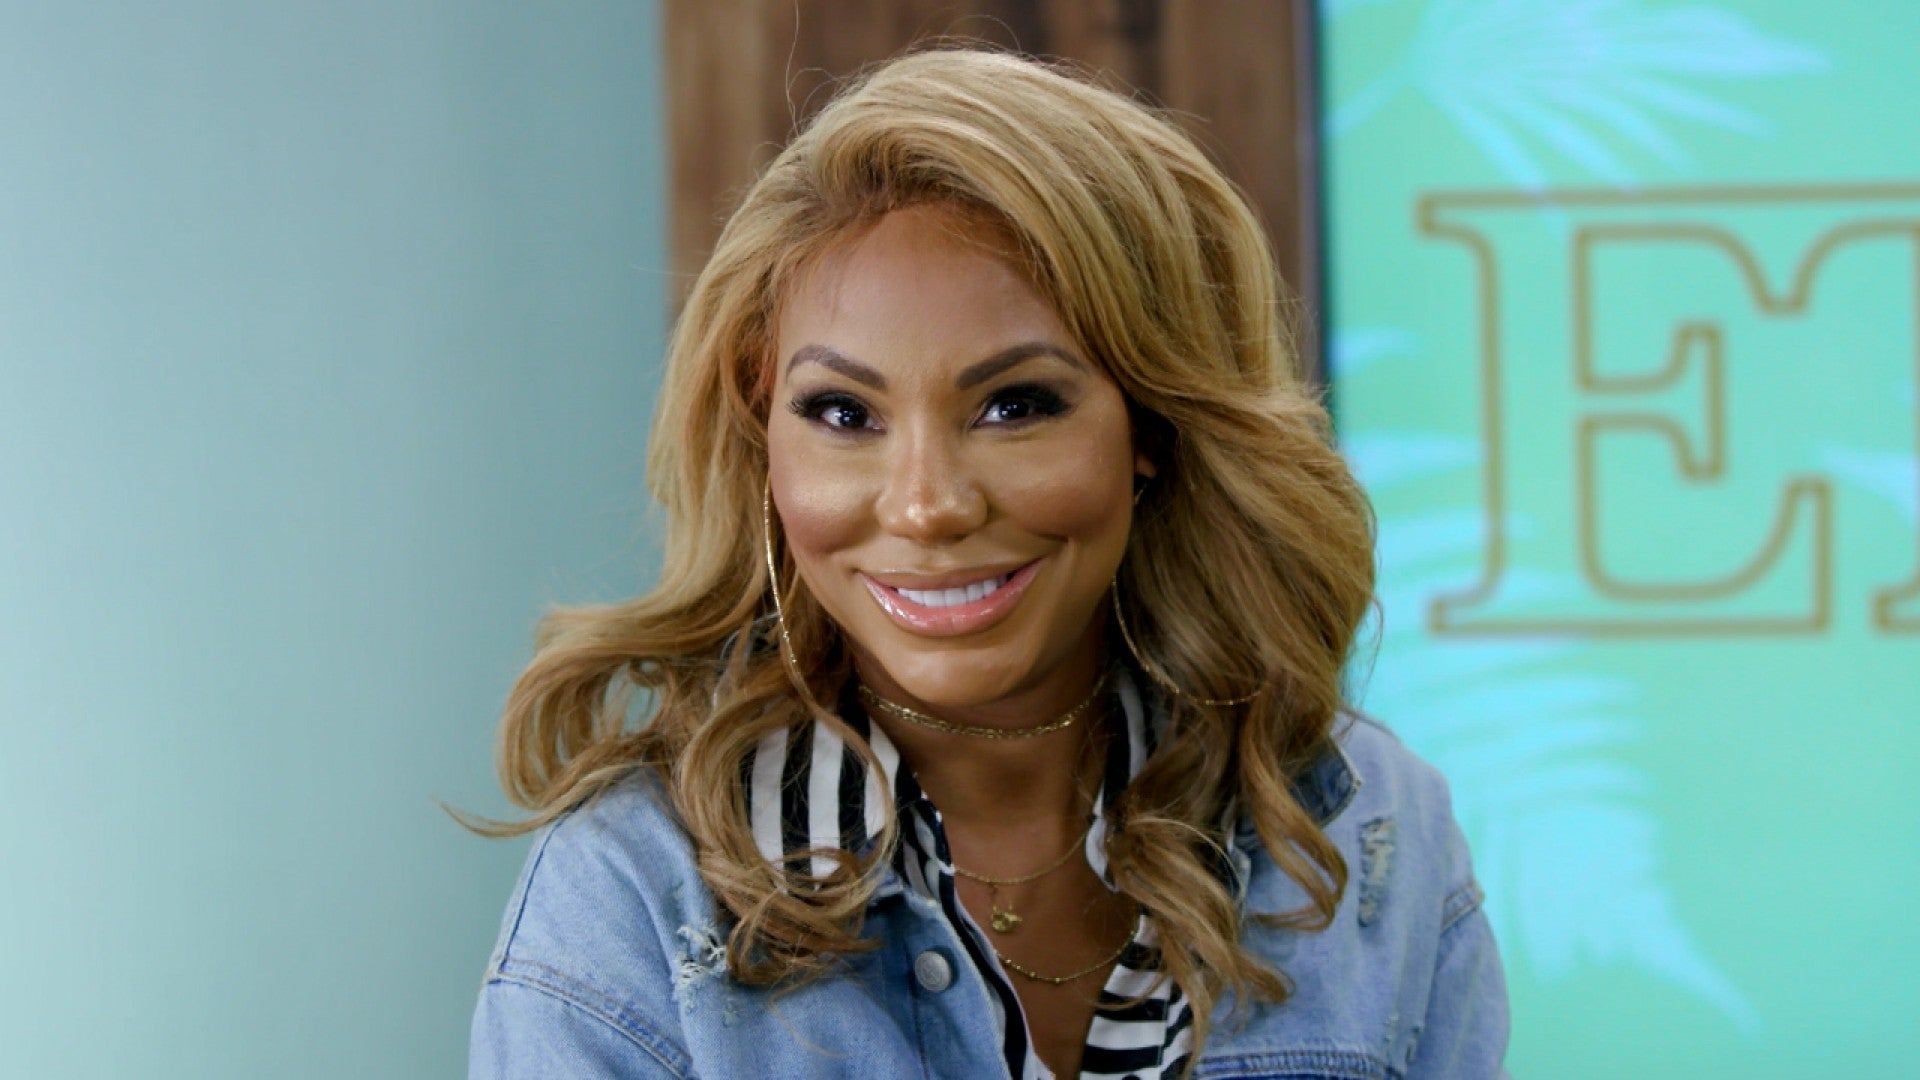 Tamar Braxton Surprises Fans With A Discount For Hair Products